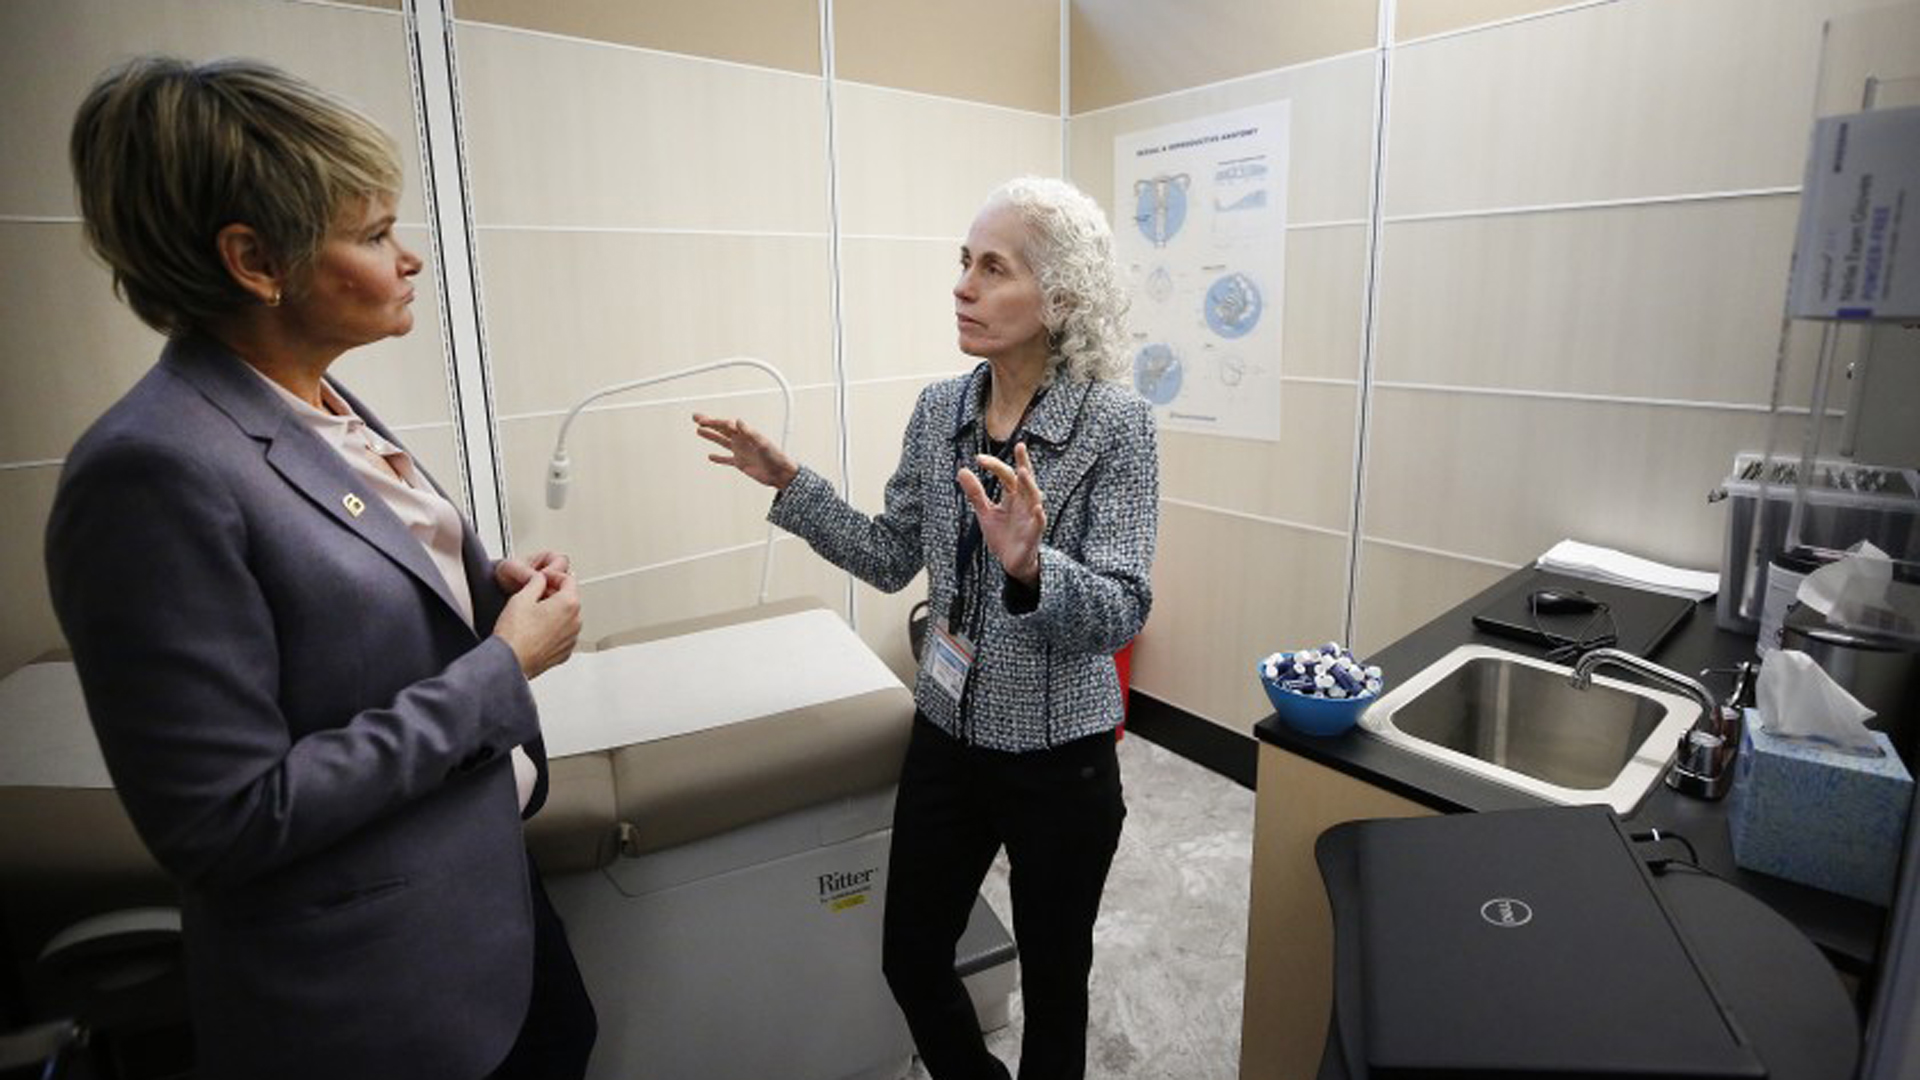 Sue Dunlap, left, president and CEO of Planned Parenthood Los Angeles, talks with Barbara Ferrer, the L.A. County public health director, as they tour the new sexual healthcare center at Esteban Torres High School in East L.A.(Credit: Al Seib / Los Angeles Times)